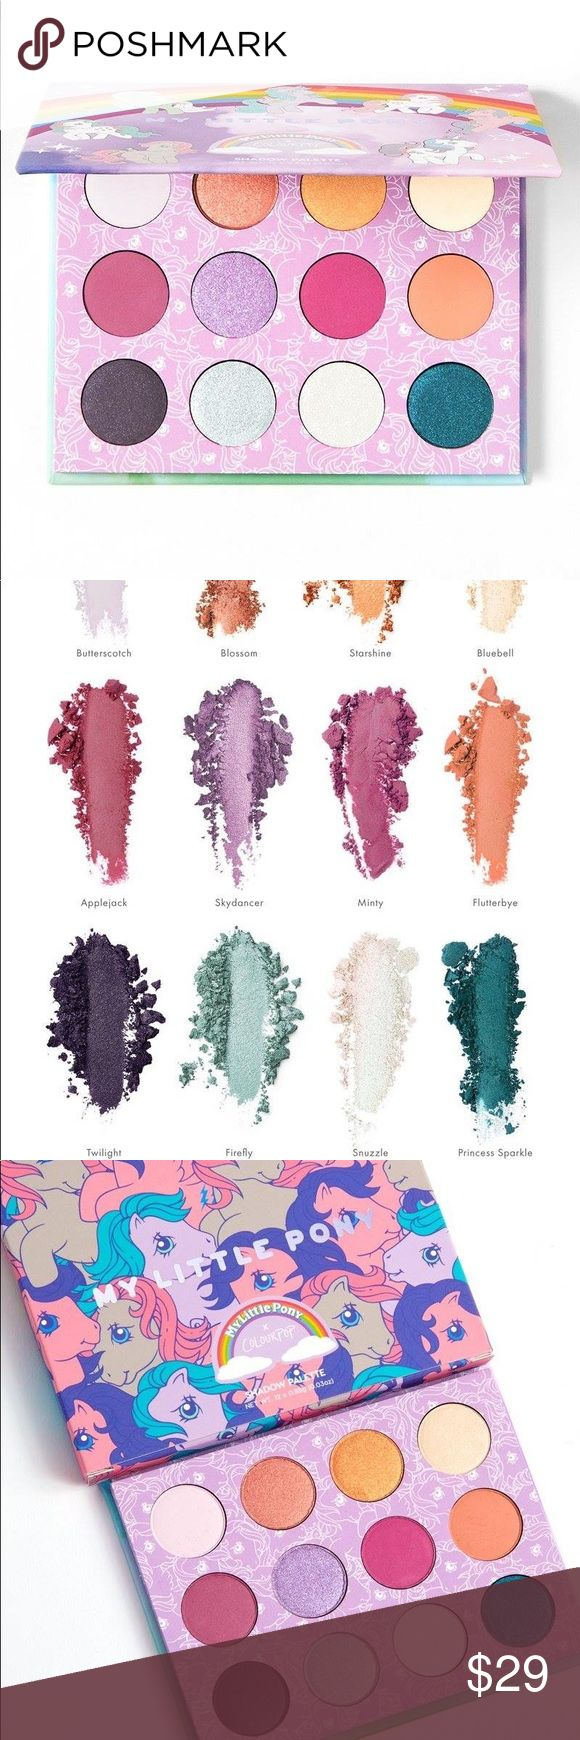 My Little Pony Pressed Powder Shadow Palette Butterscotch: white with subtle pink violet opalescent sheen Blossom:metallic peach with pink and gold duochrome finish Starshine:metallic golden tangerine Bluebell:satin golden ivory Applejack:matte dusty red violet Skydancer:metallic bright icy lavender Minty:matte cool-toned fuchsia Flutterbye:matte true pastel peach Twilight:satin deep blackened violet Firefly:metallic silvery baby blue Snuzzle:metallic icy white with opalescent blue duochrome…